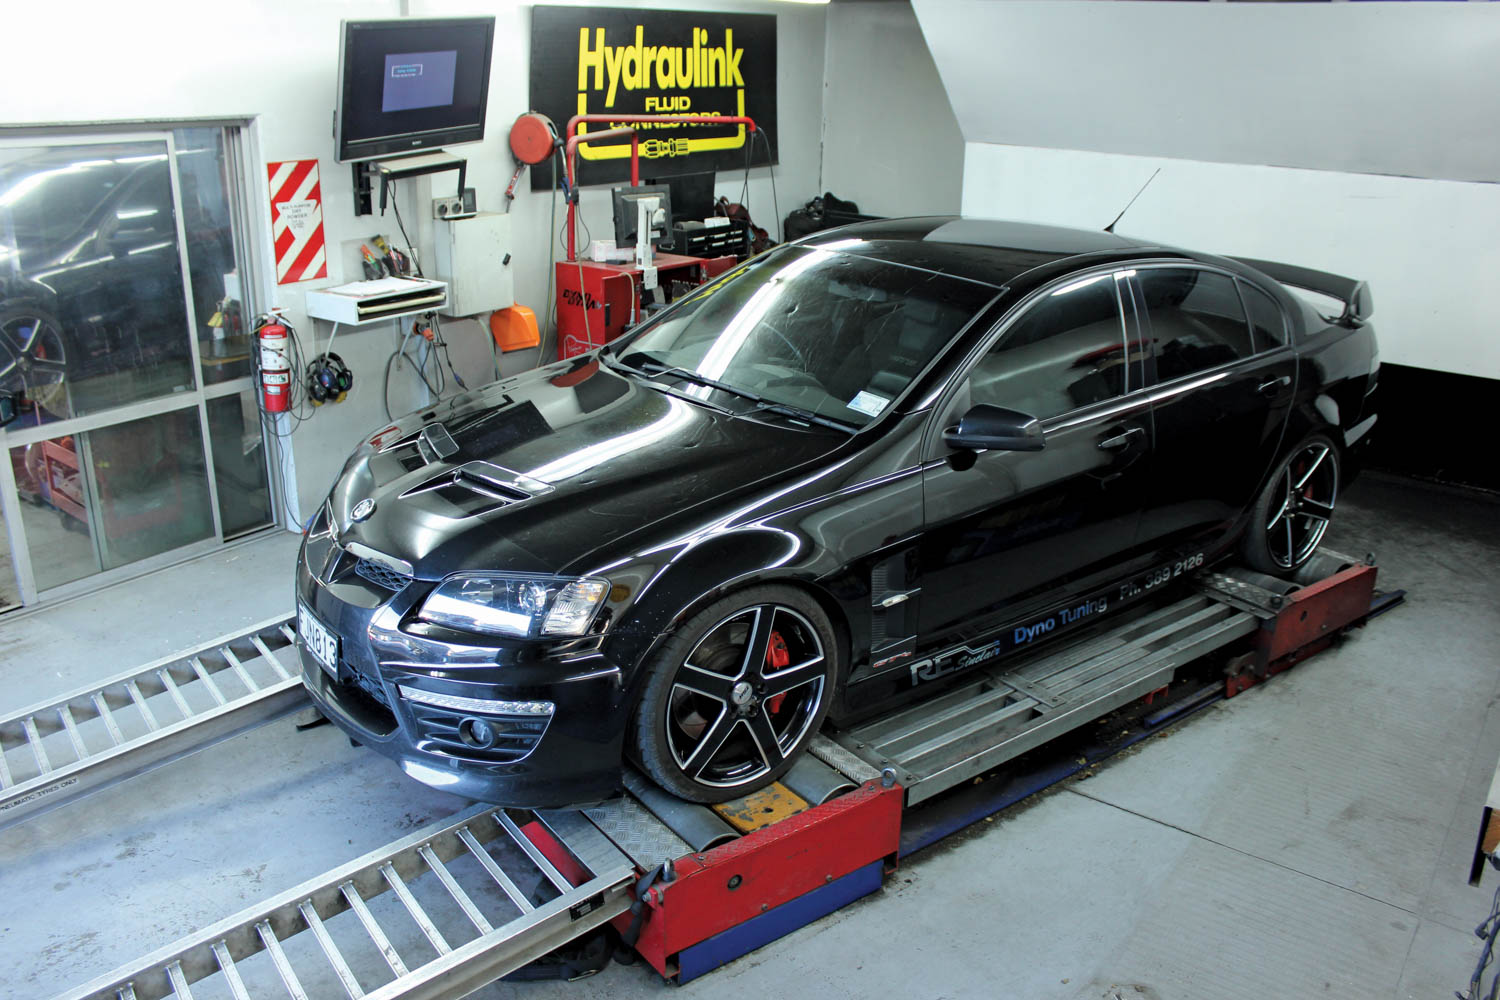 Dyno tuning: find out how you can spend your money wisely — The